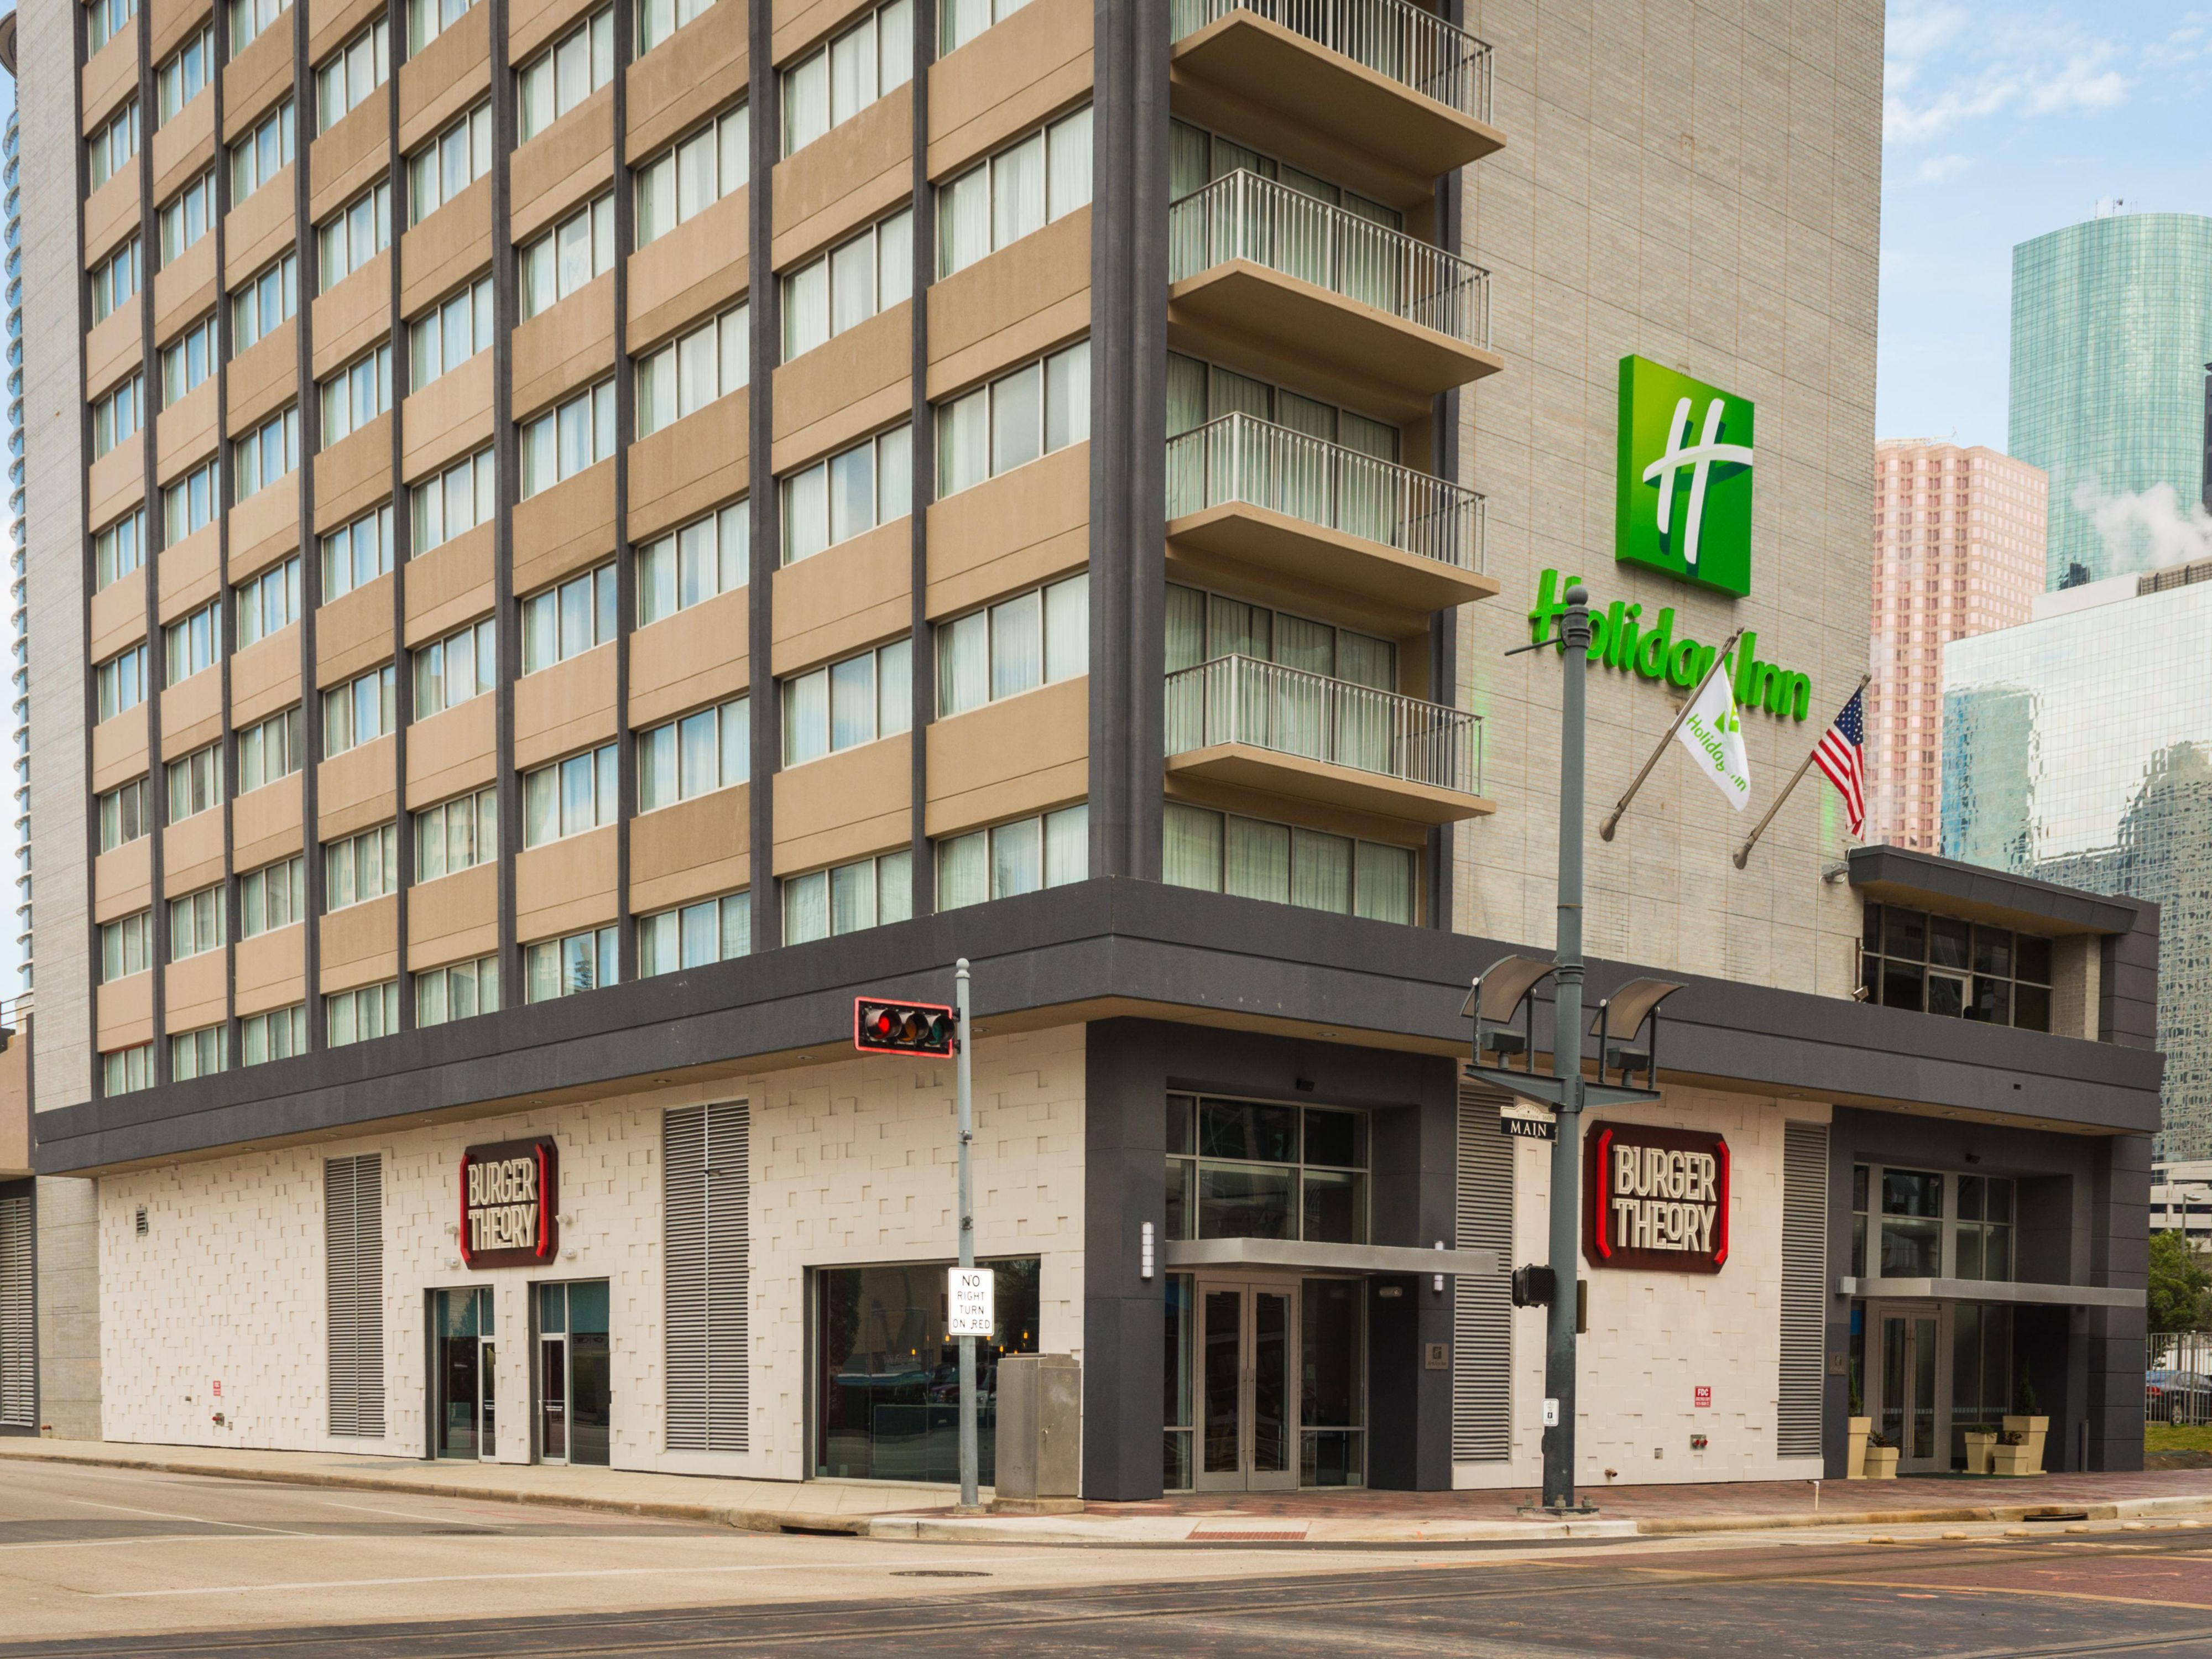 Welcome to the Holiday Inn Houston Downtown and Burger Theory